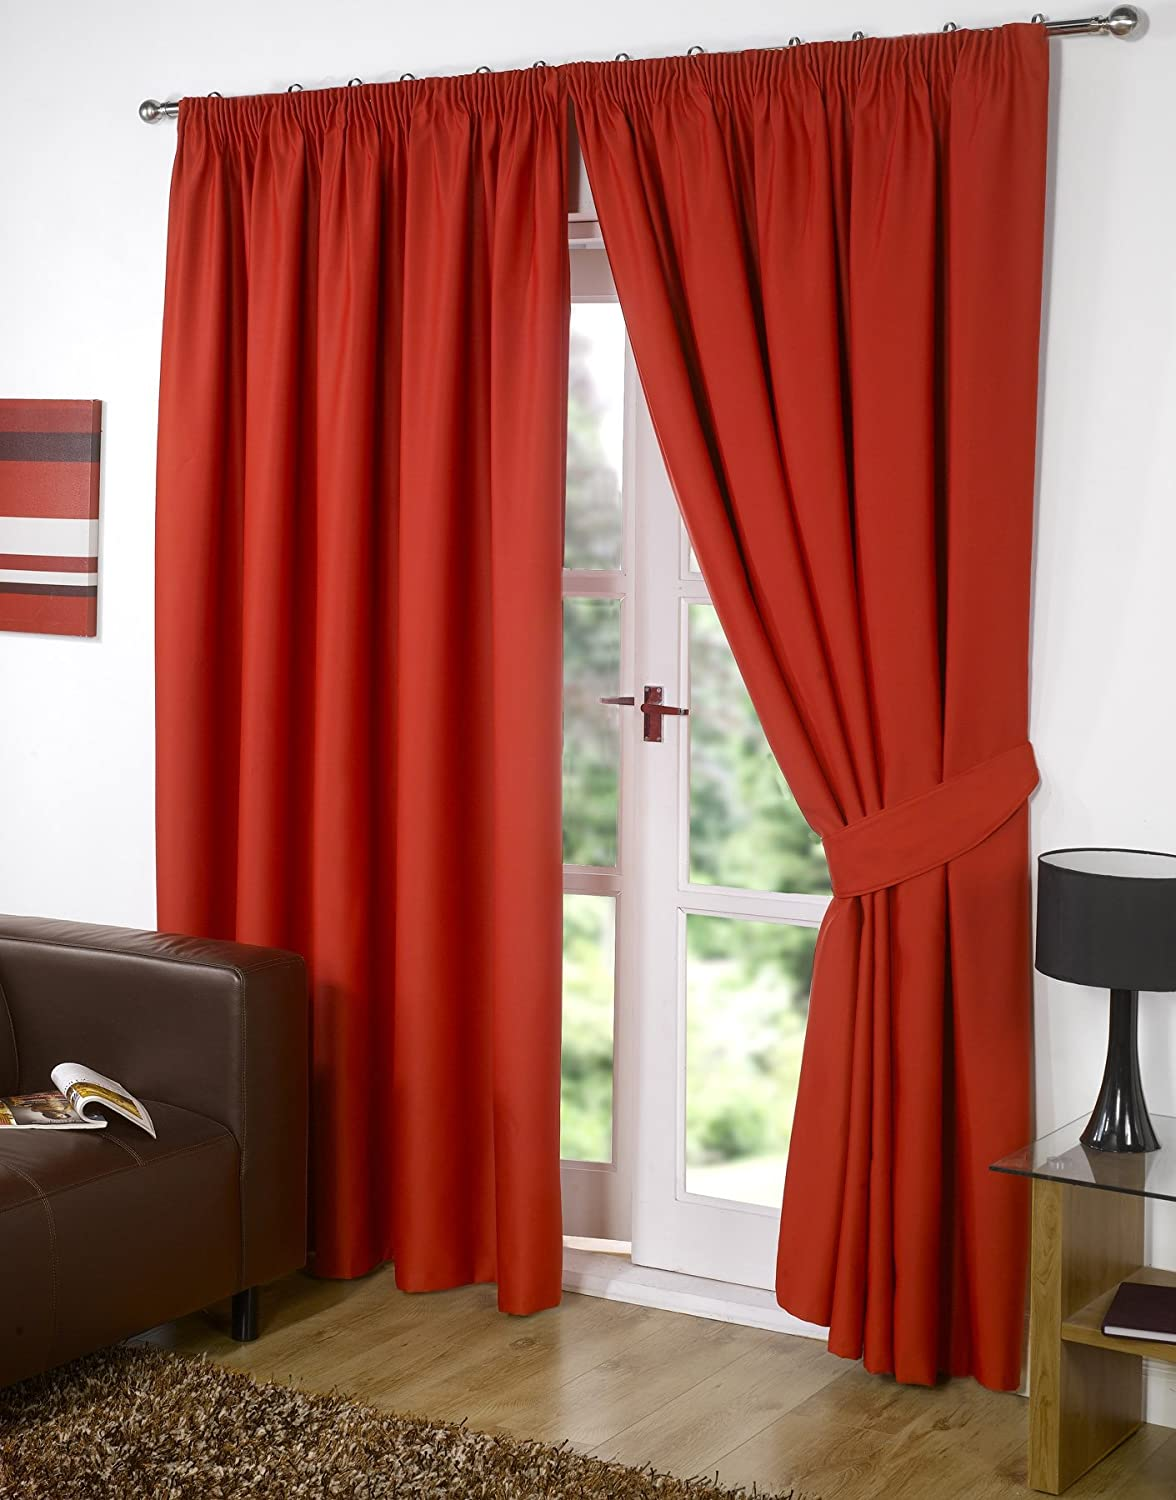 reducing out silentnight curtains colorful unwanted up light x and bedrooms kids block curtain pin brighten help eyelet colourful